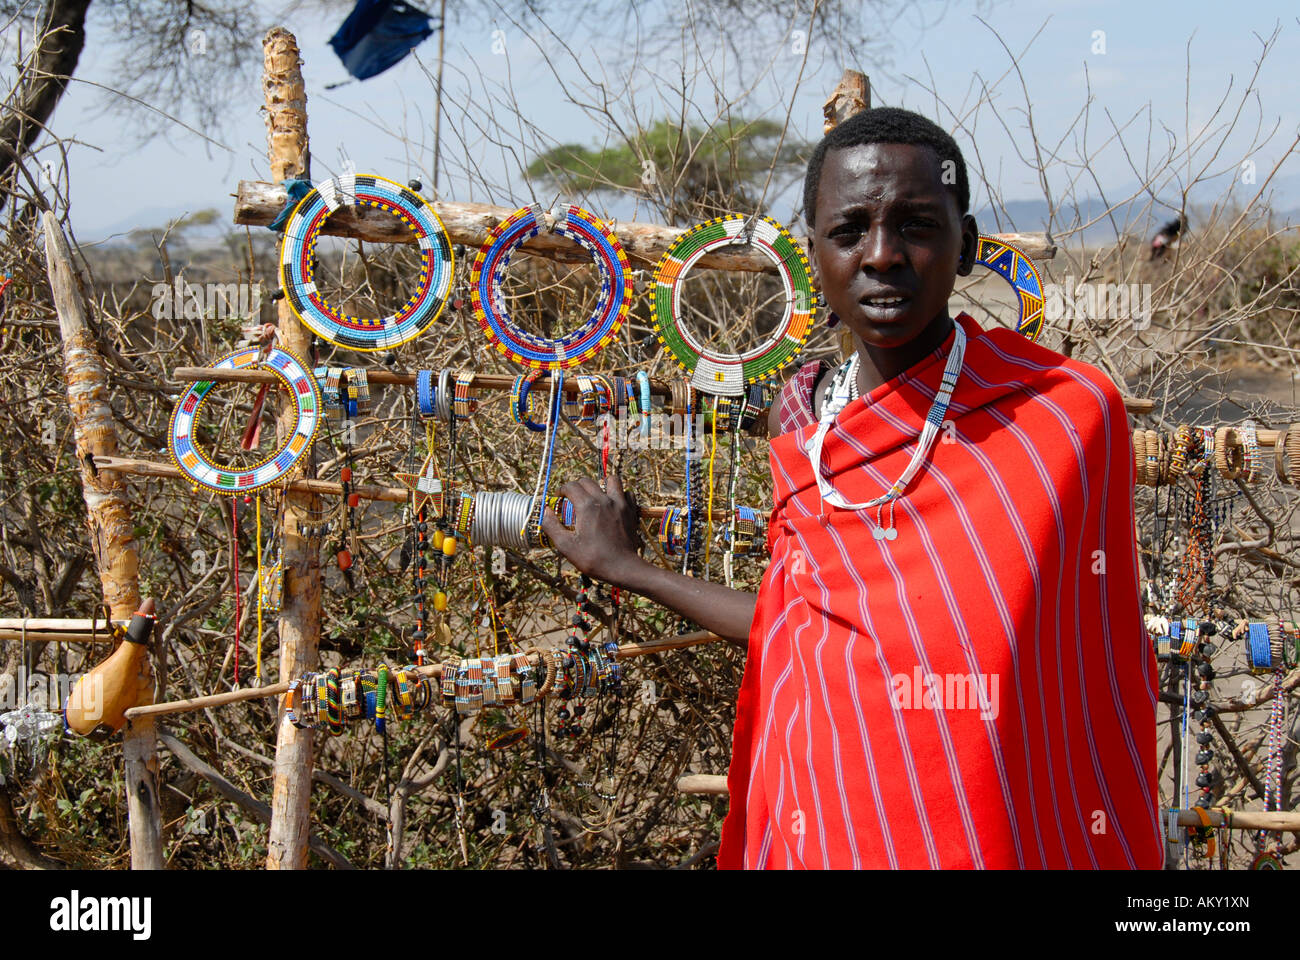 Masai woman sells colourful jewelry in the kraal Ngorongoro Conservation Area Tanzania - Stock Image